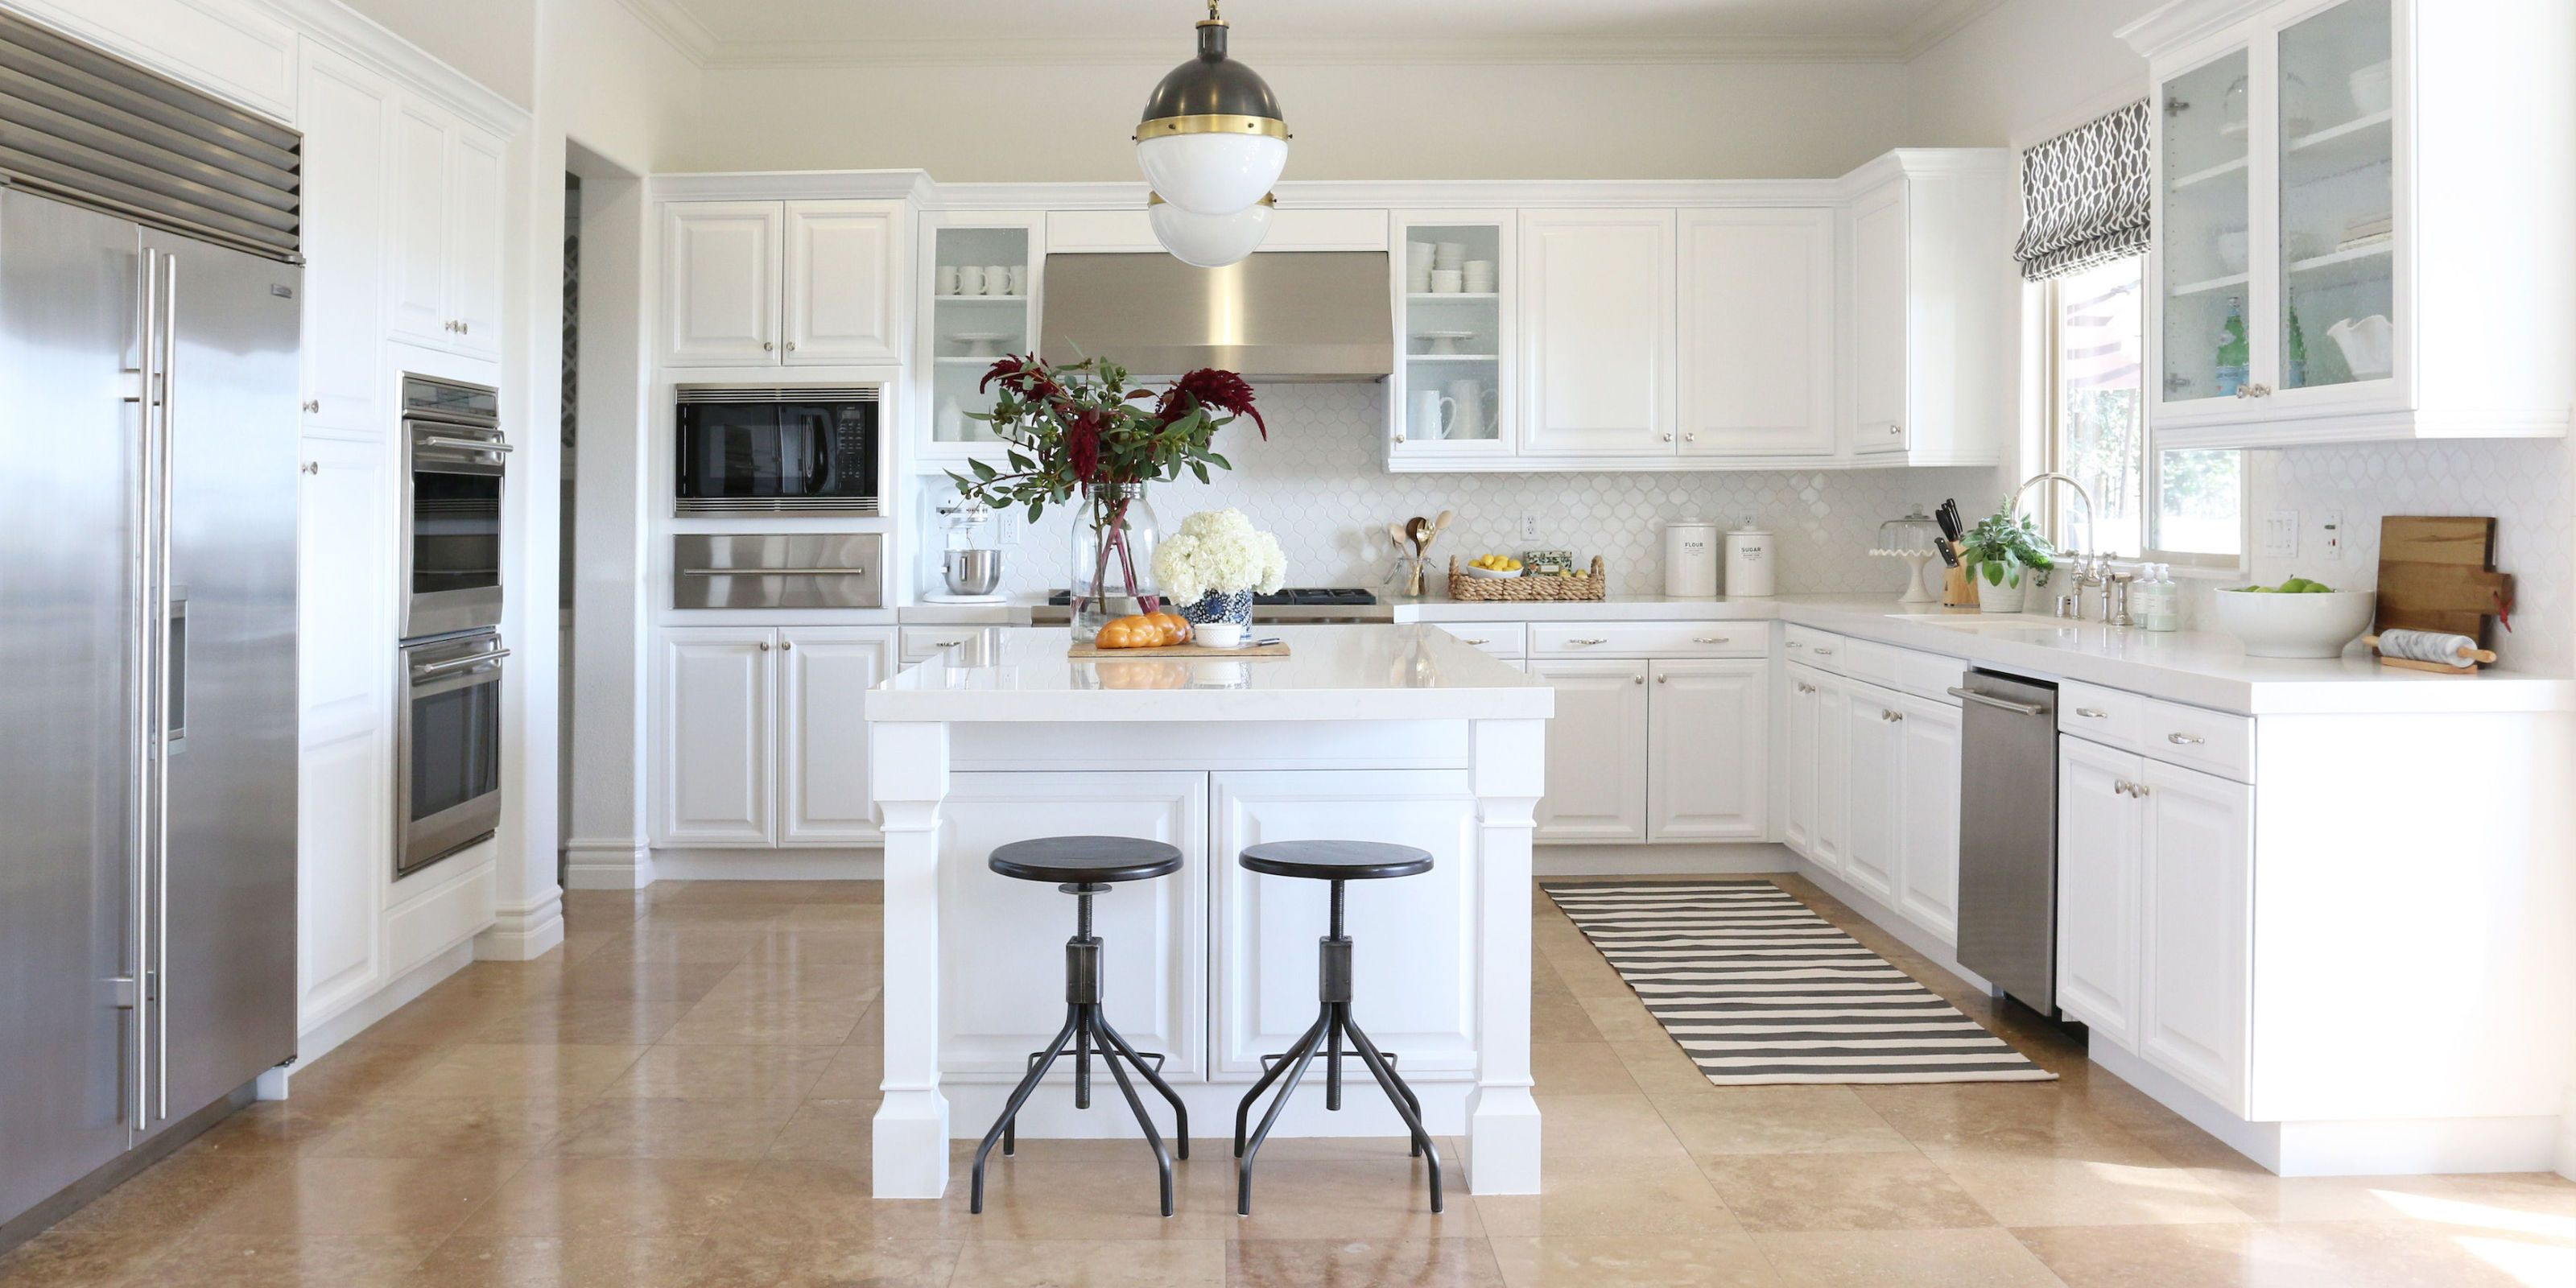 14 best white kitchen cabinets design ideas for white cabinets rh elledecor com image white kitchen cabinets pictures white kitchen cabinets granite countertops